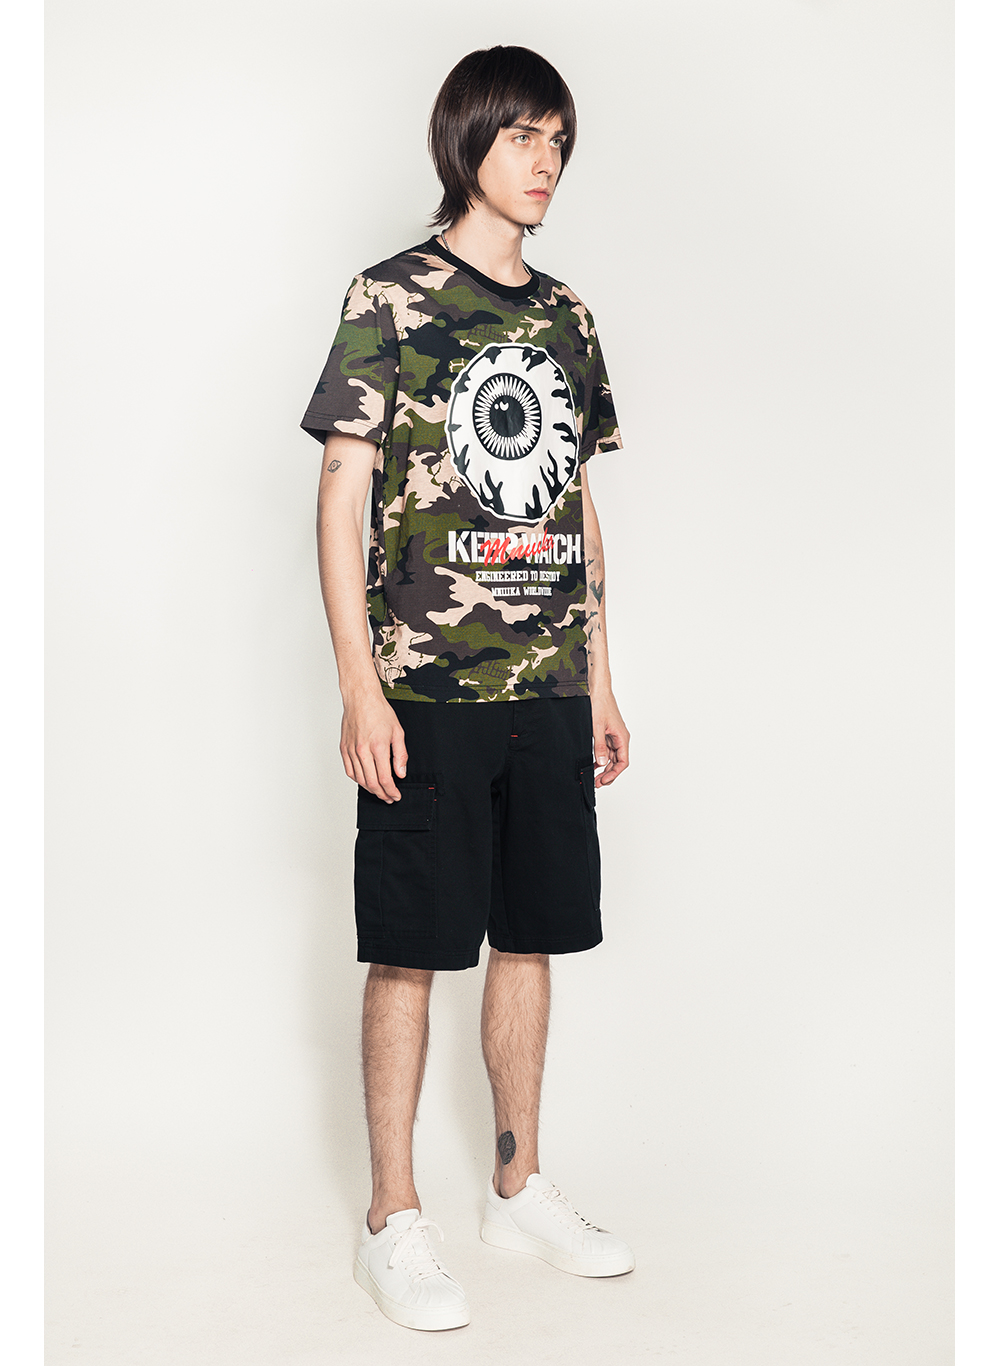 Keep Watch Camo T-Shirt